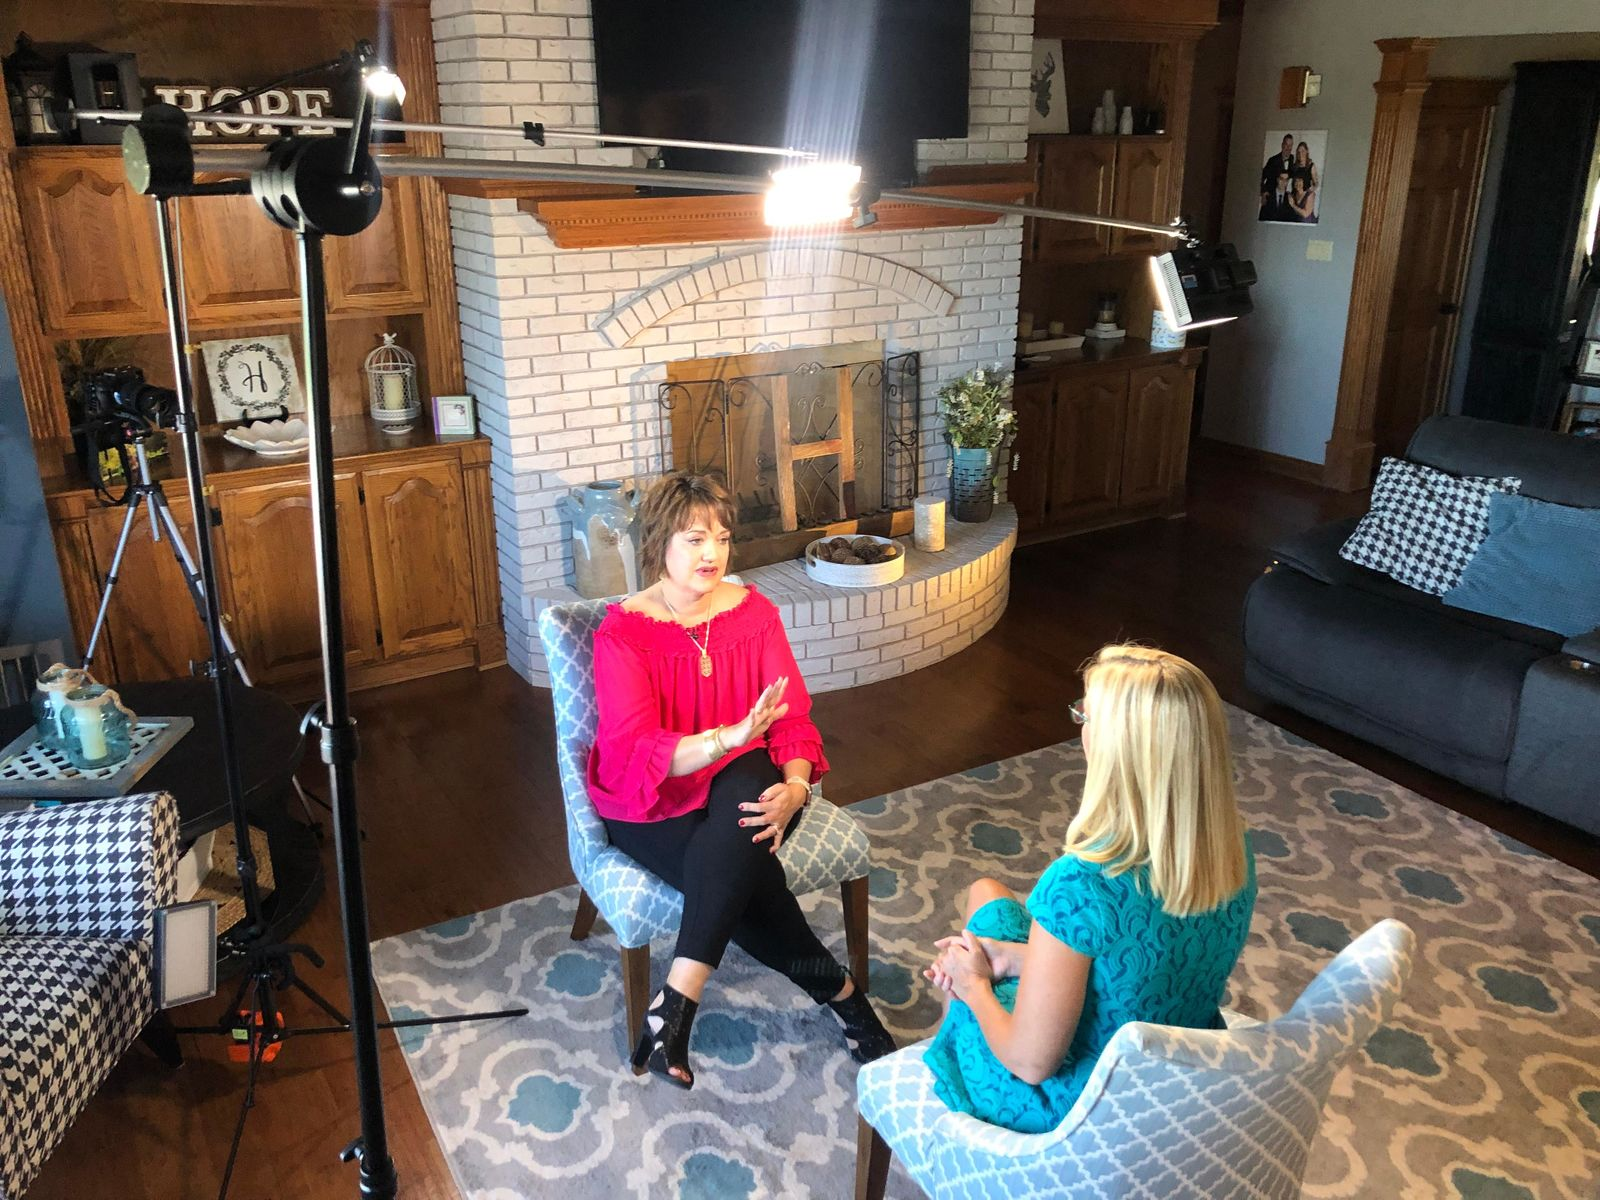 Raylene Hollrah talks with investigative reporter Joce Sterman about her BIA-ALCL diagnosis (Photo: Alex Brauer, Sinclair Broadcast Group)